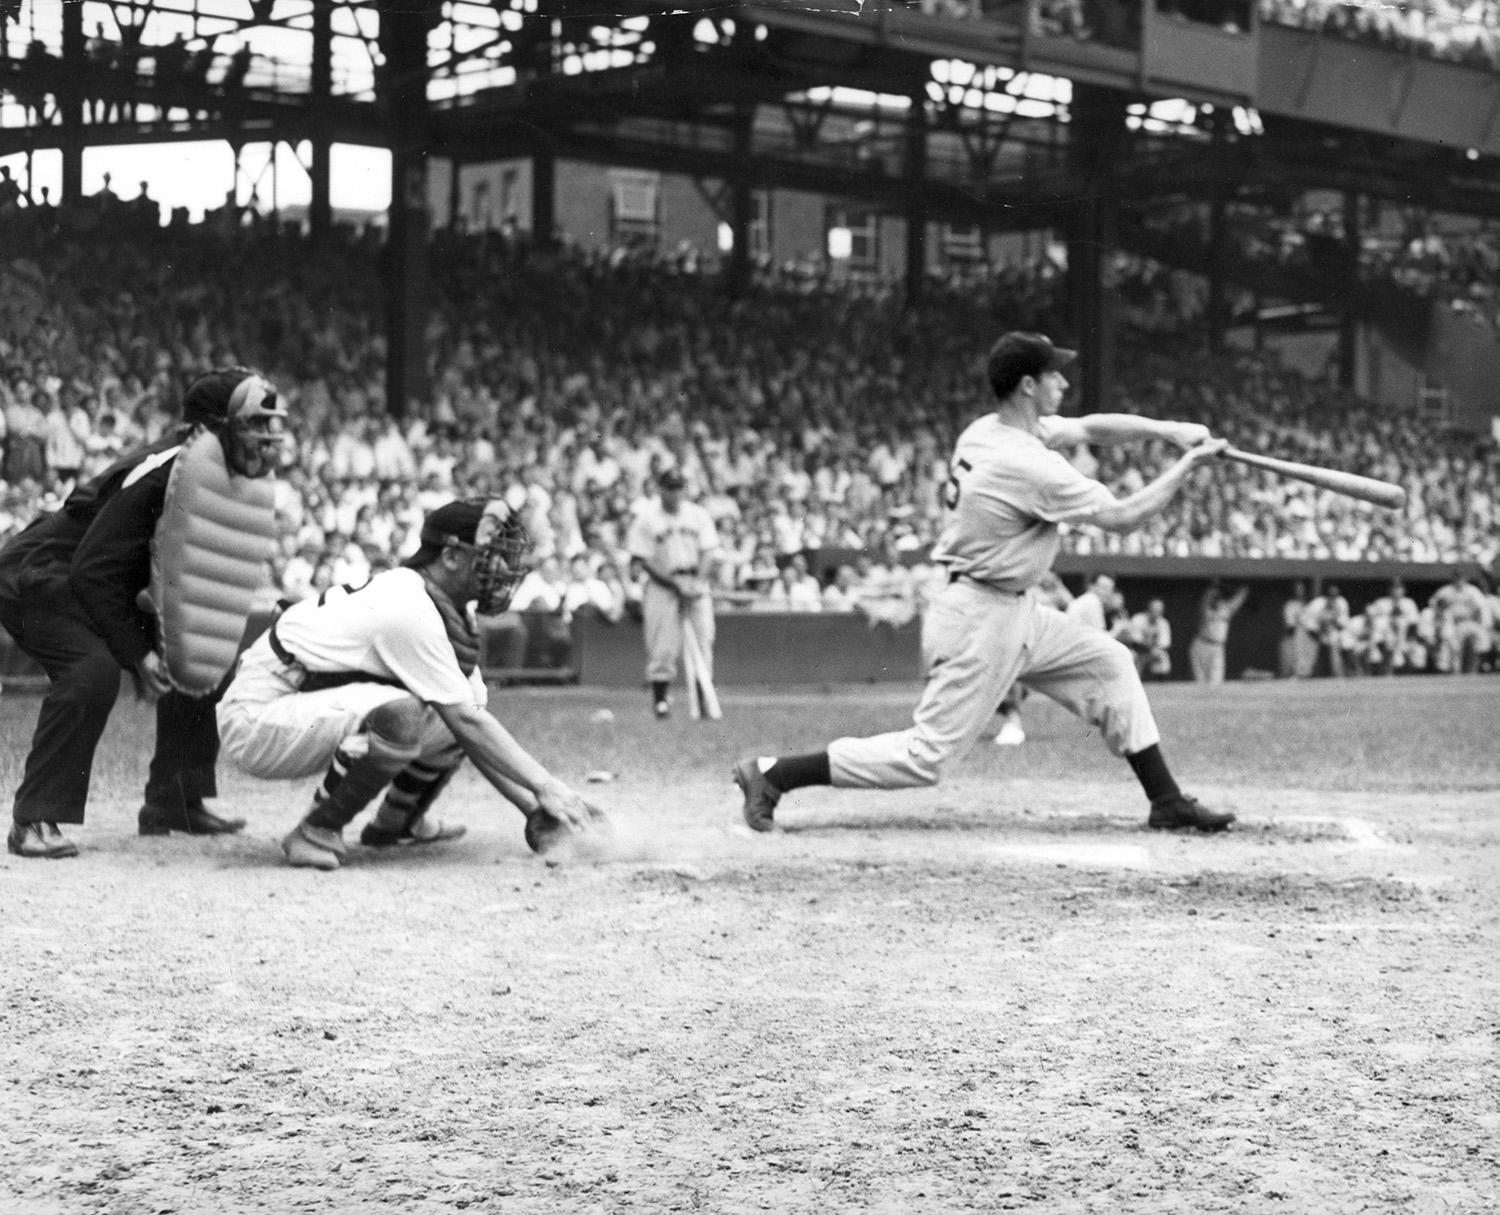 Joe DiMaggio, pictured above batting in his 42nd consecutive game, still holds the record for the longest hit streak in MLB history, hitting safely in 56 straight games in 1941. (National Baseball Hall of Fame and Museum)